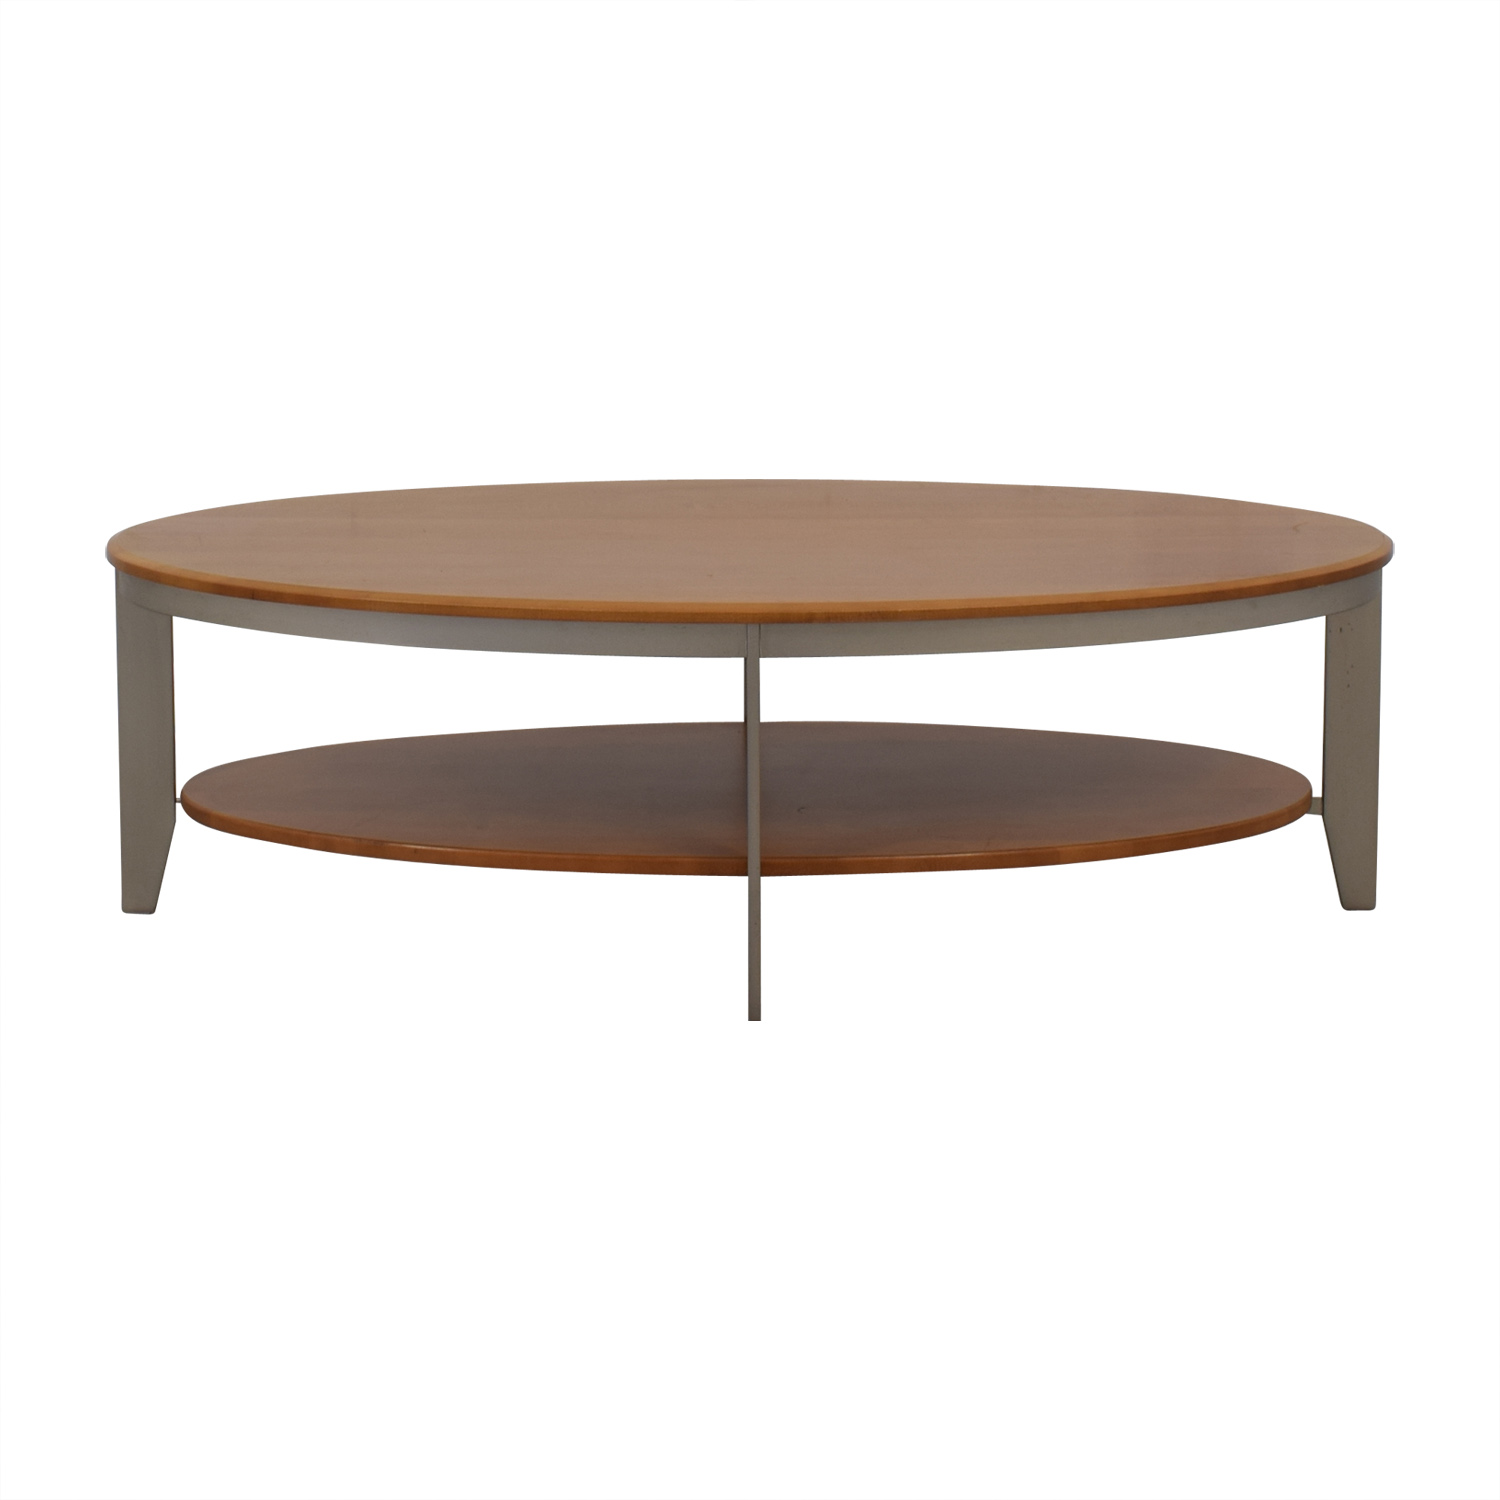 shop Ethan Allen Elements Collection Honey Oval Coffee Table Ethan Allen Tables